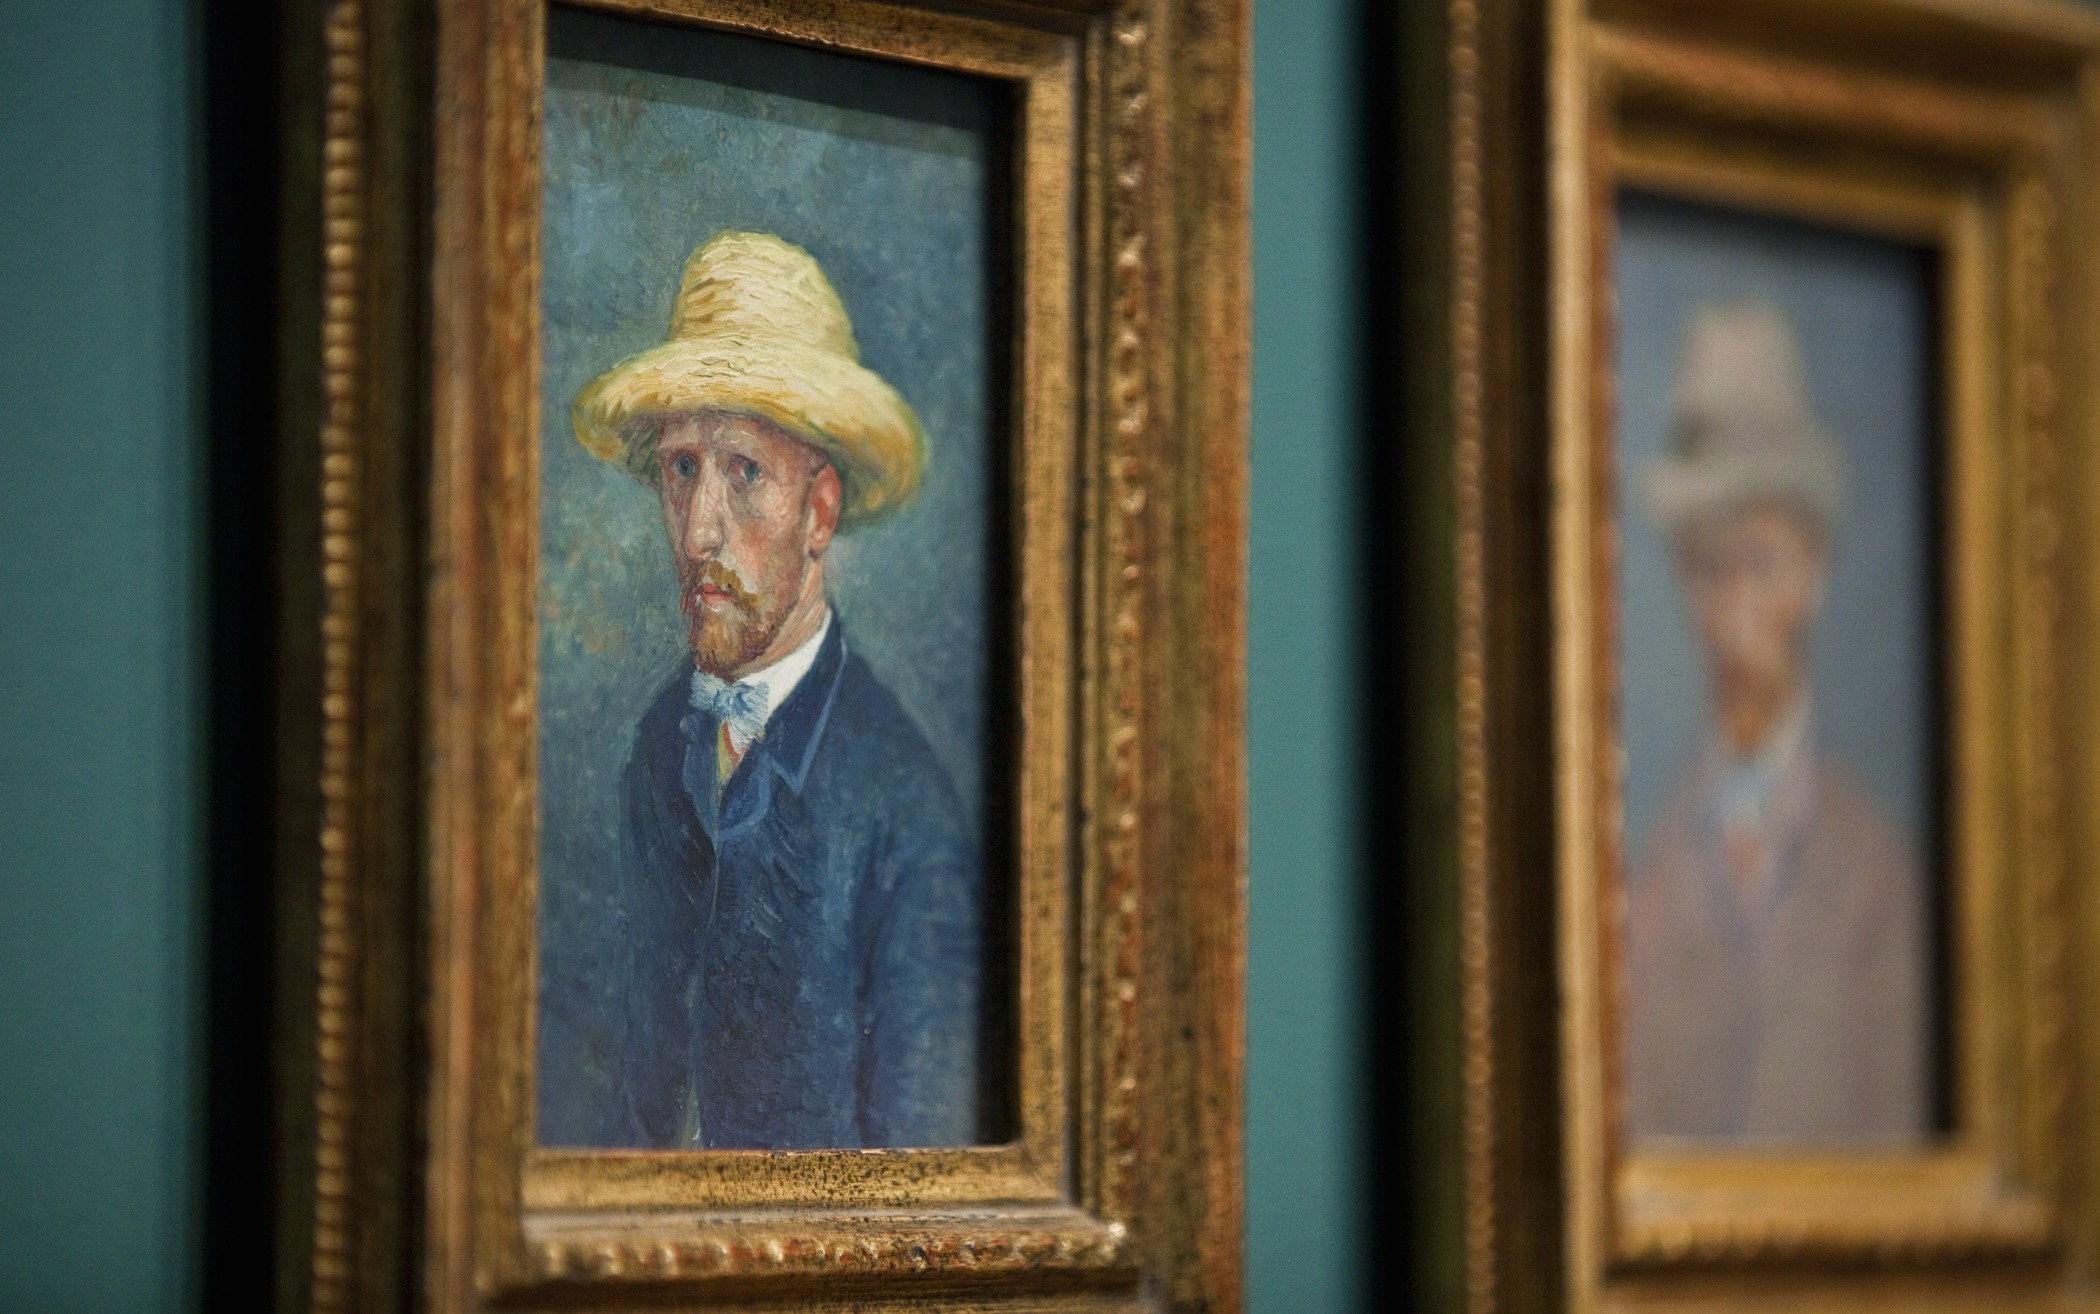 Paintings of dutch painter Vincent van Gogh are hung in the Van Gogh Museum in Amsterdam The Netherlands June 21th 2011.  The museum discovered a painting of Theo van Gogh, the brother of Vincent van Gogh. After new research the museum thinks that a selfportrait of Van Gogh from 1887 (L) is a portrait of his brother. The new exhibition Van Gogh in Antwerpen and Paris in the Van Gogh museum opens for the public on June 22. AFP PHOTO / ANP / ILVY NJIOKIKTJIEN ***netherlands out - belgium out*** (Photo credit should read Ilvy Njiokiktjien/AFP/Getty Images)